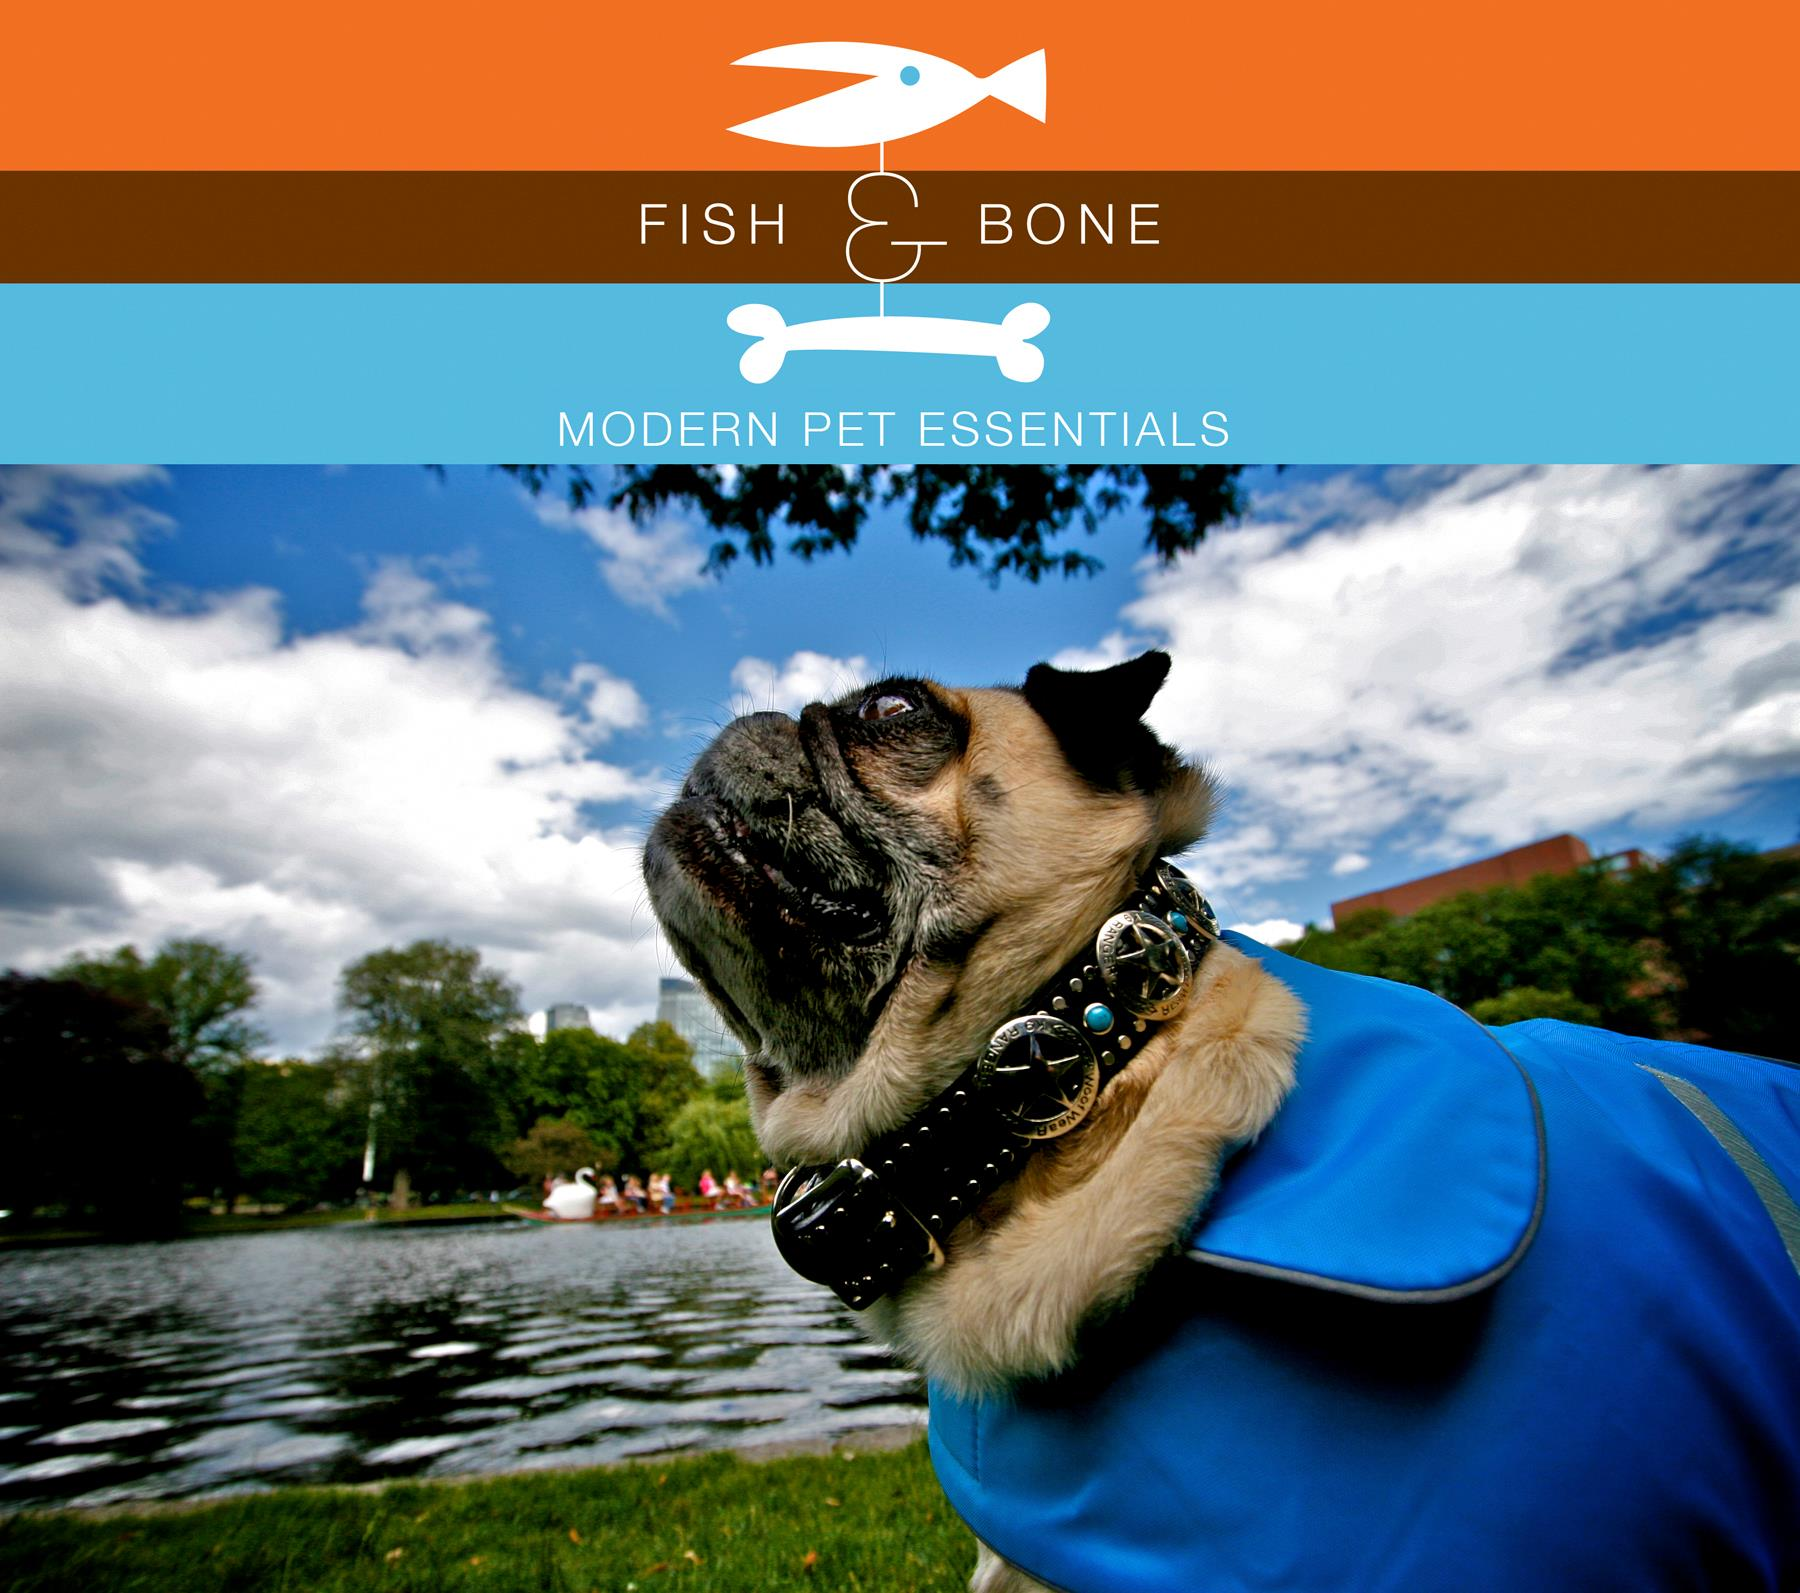 Gone to the Dogs: Local Pet Supply Store Fish & Bone in Boston